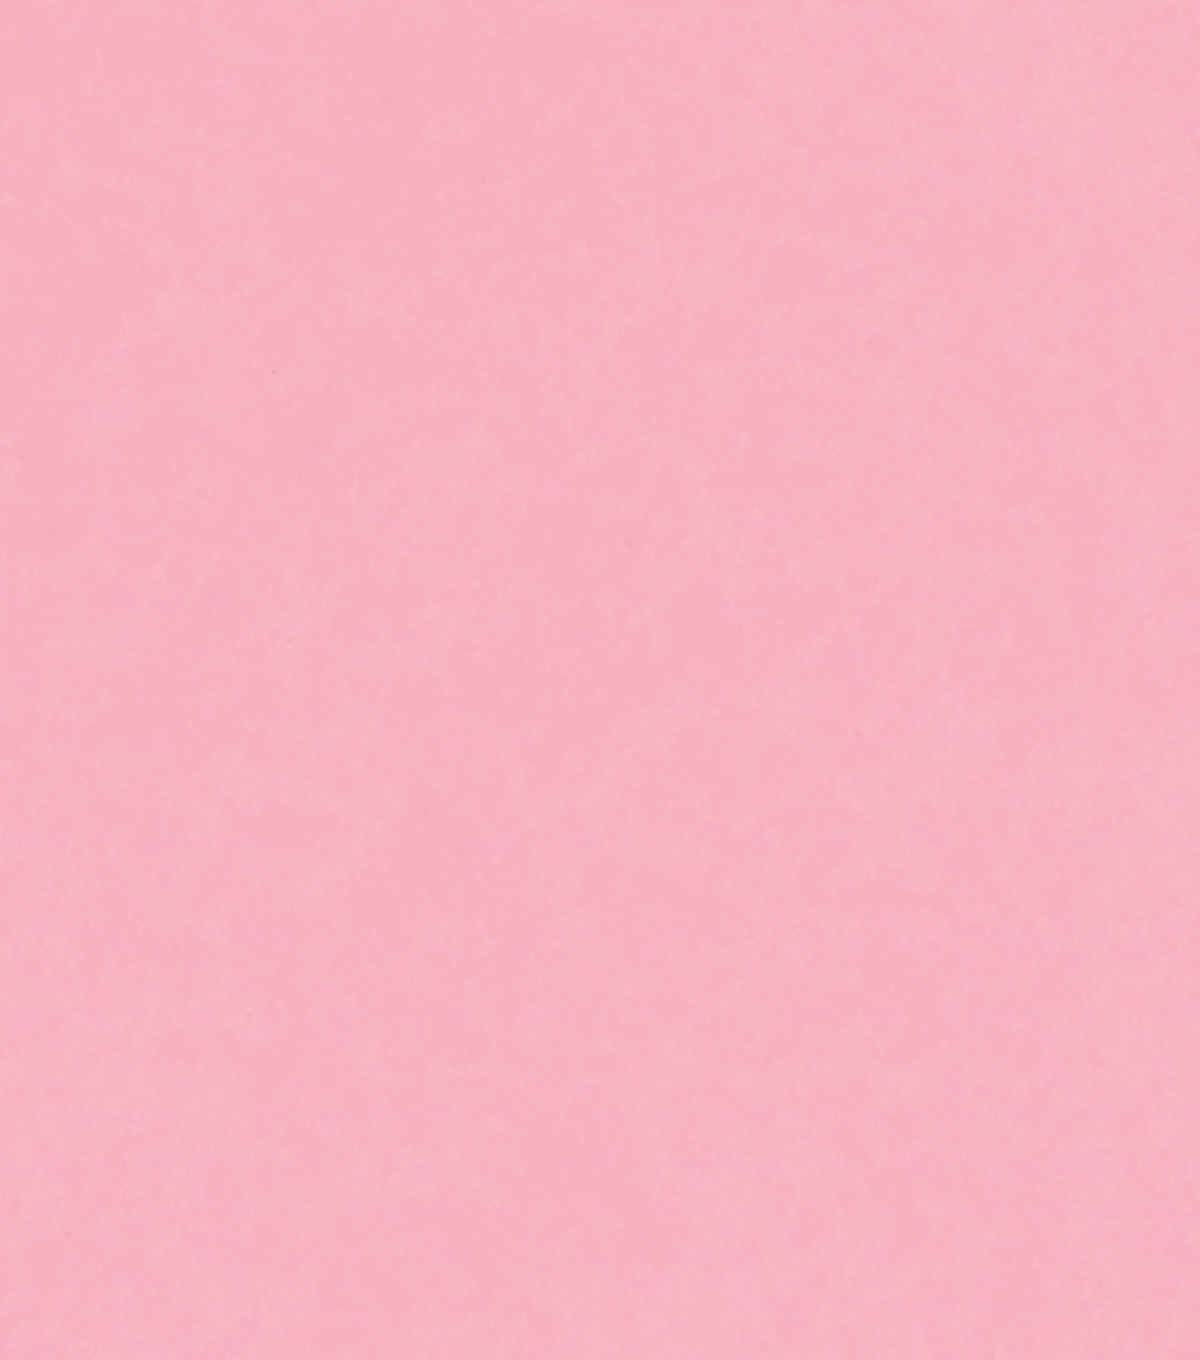 Bazzill Card Shoppe Heavyweight Cardstock Paper 12\u0027\u0027 x 12\u0027\u0027, Cotton Candy